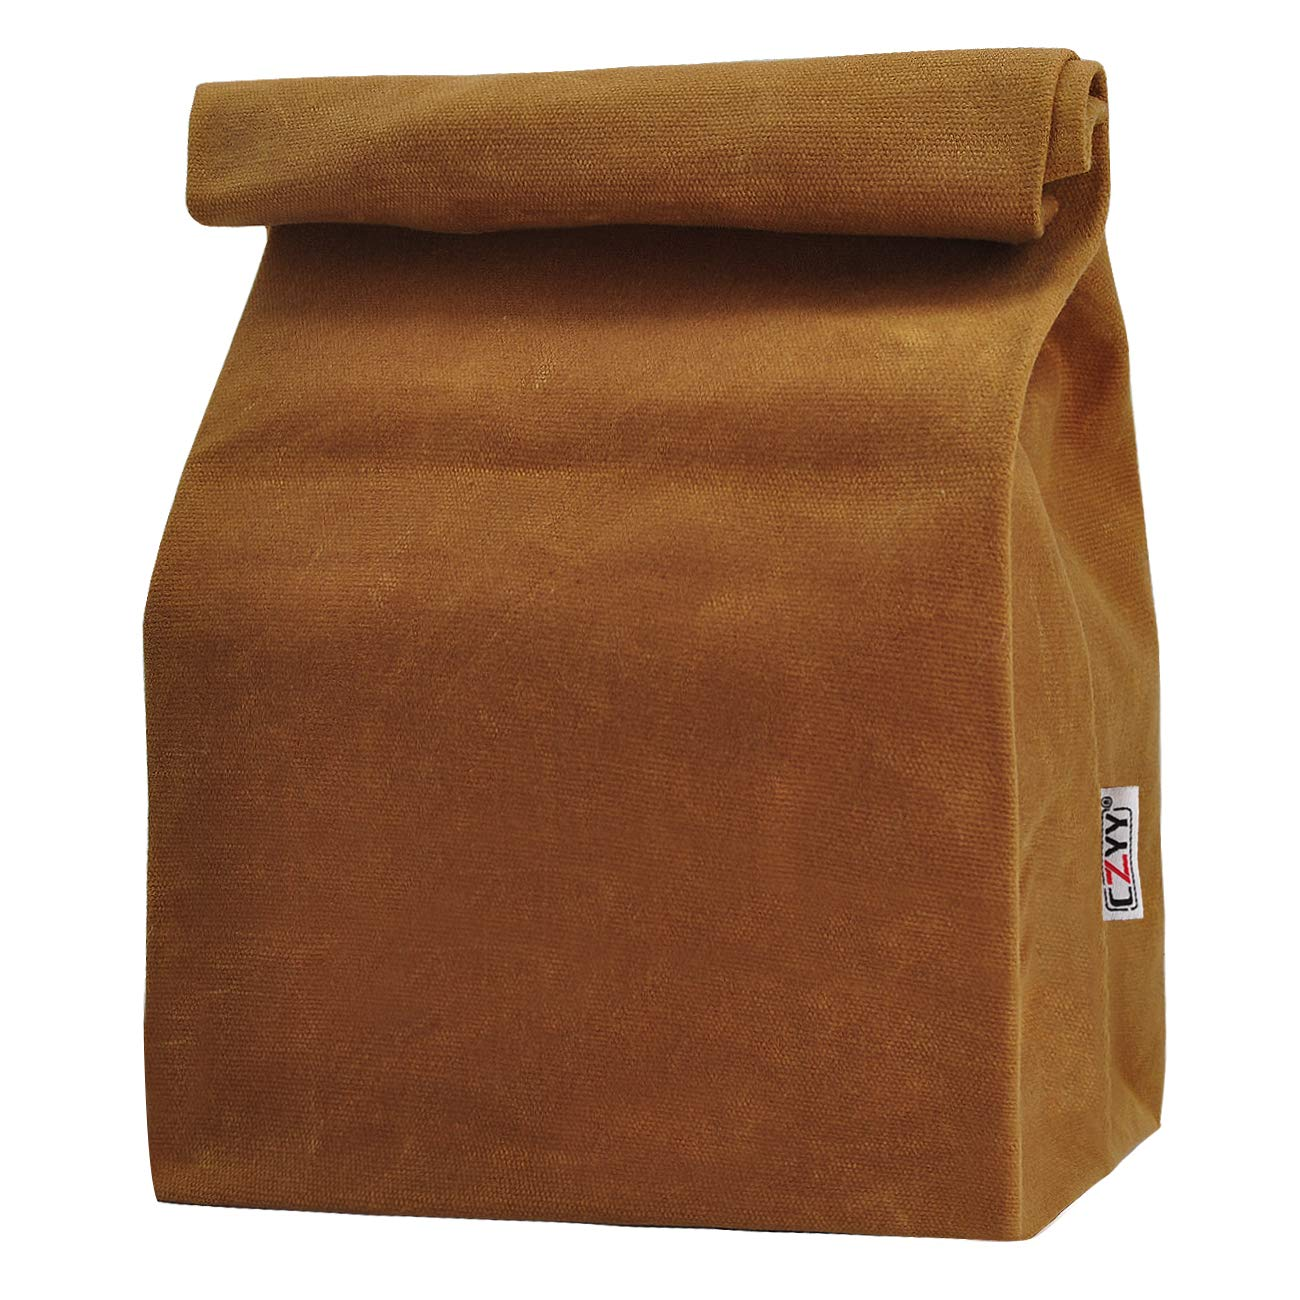 Waxed Canvas Lunch Bags Brown Paper Bag Styled - Classic Updated - Reusable and Washable, Worthbuy Lunch Box for Men & Women by CZYY